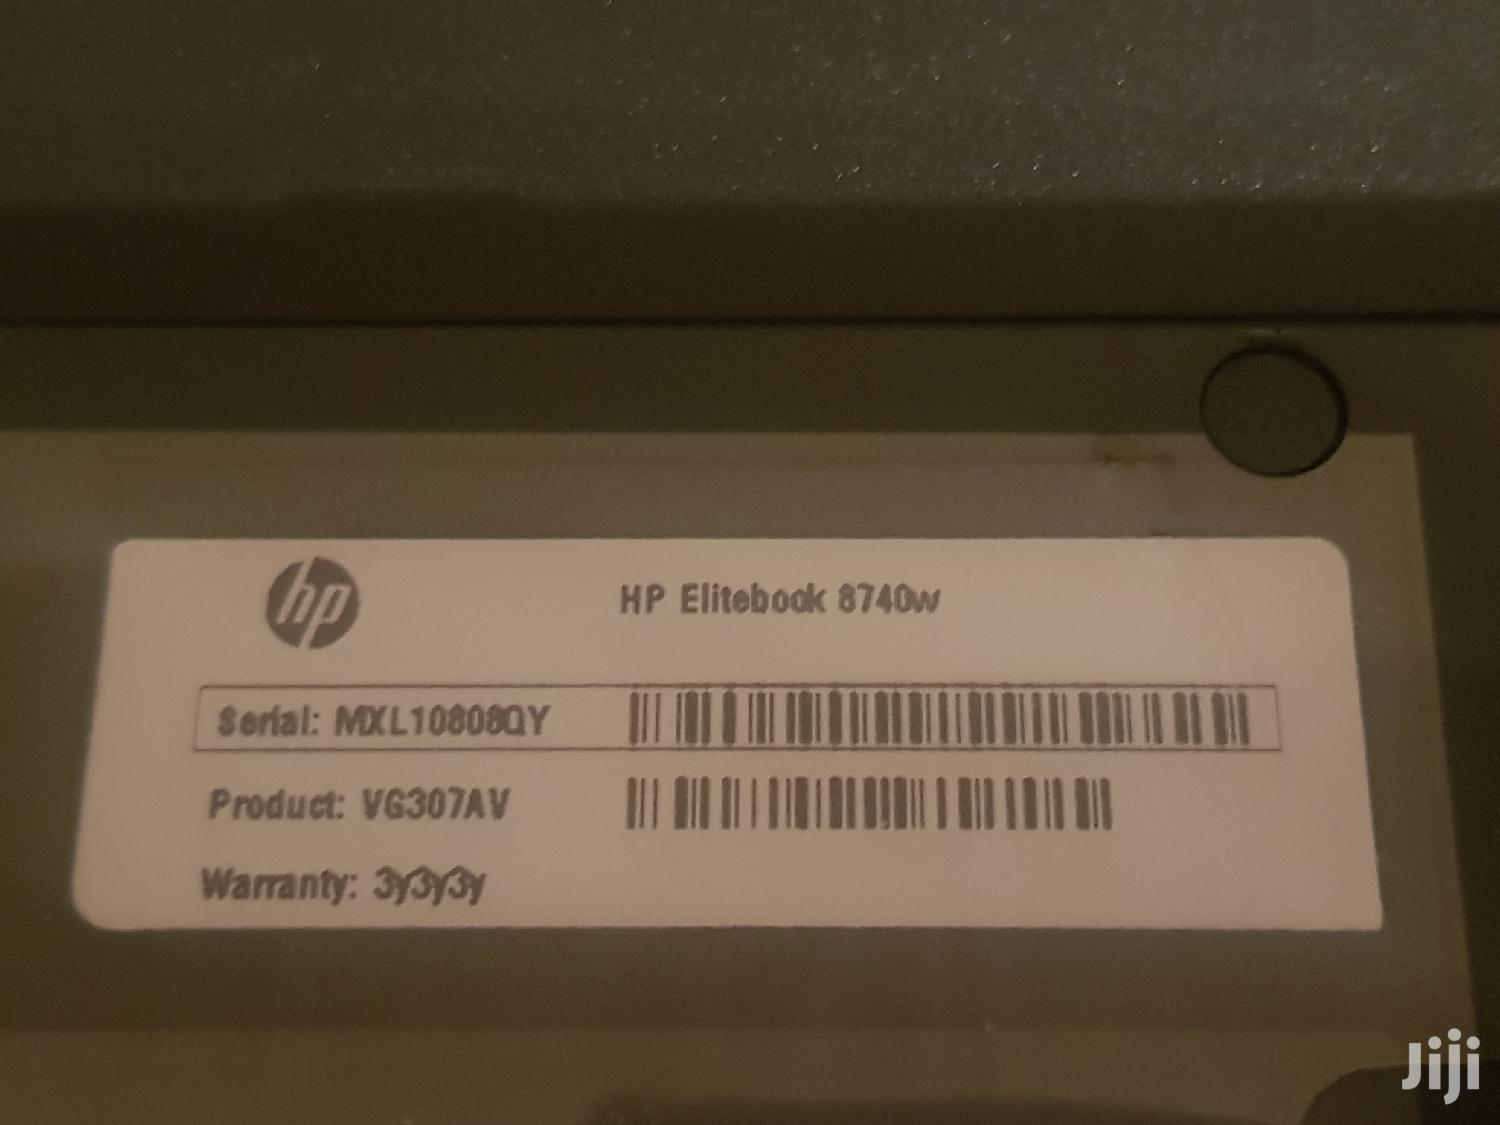 Laptop HP EliteBook 8740W 8GB Intel Core i7 HDD 500GB   Laptops & Computers for sale in Adenta Municipal, Greater Accra, Ghana